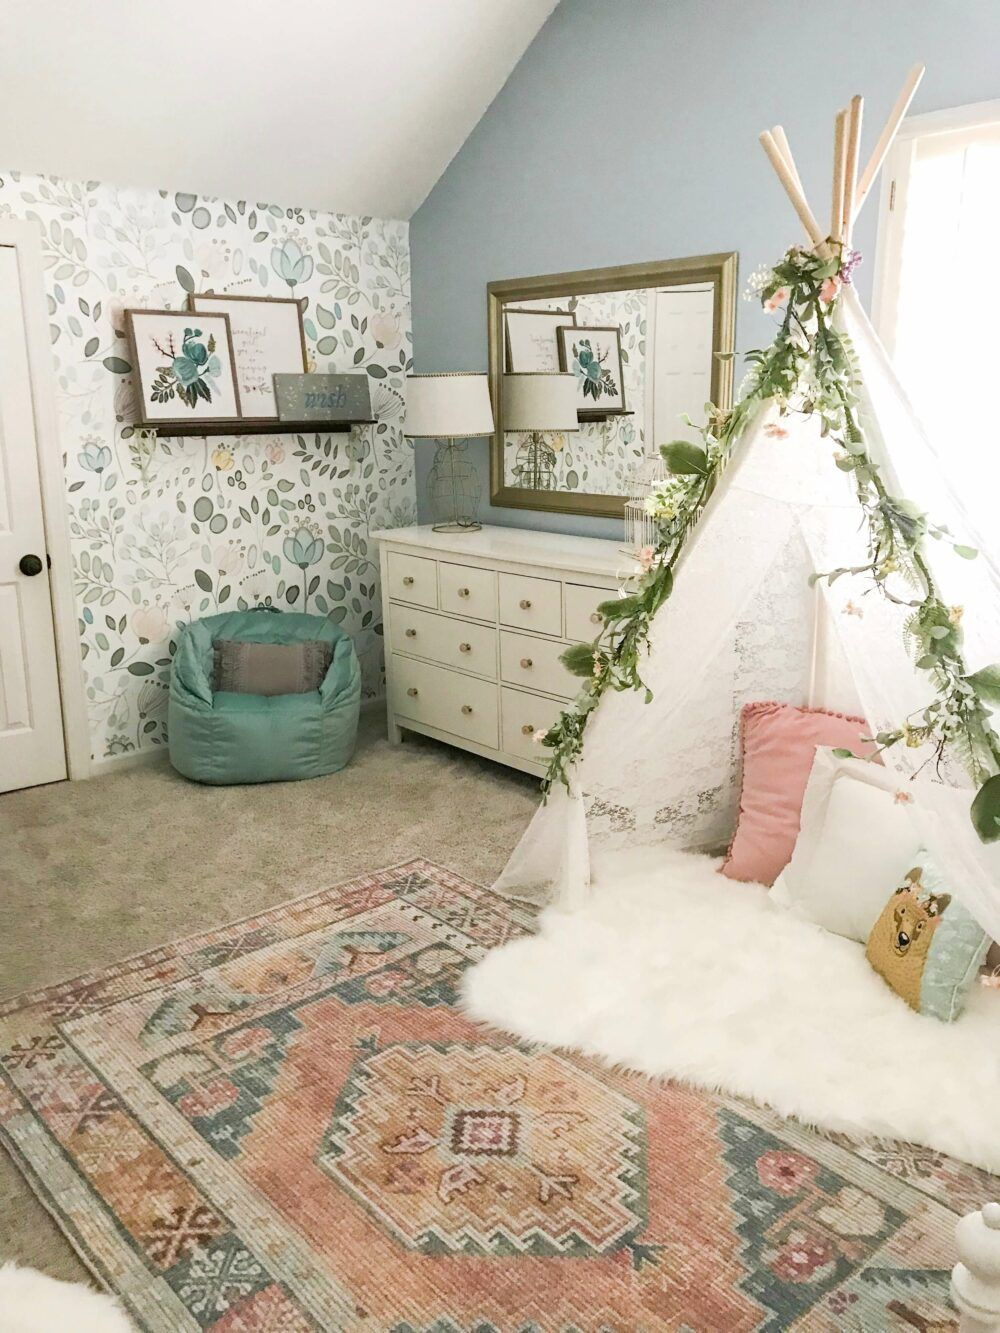 Cool aesthetic toddler room color ideas in a trendy style ...